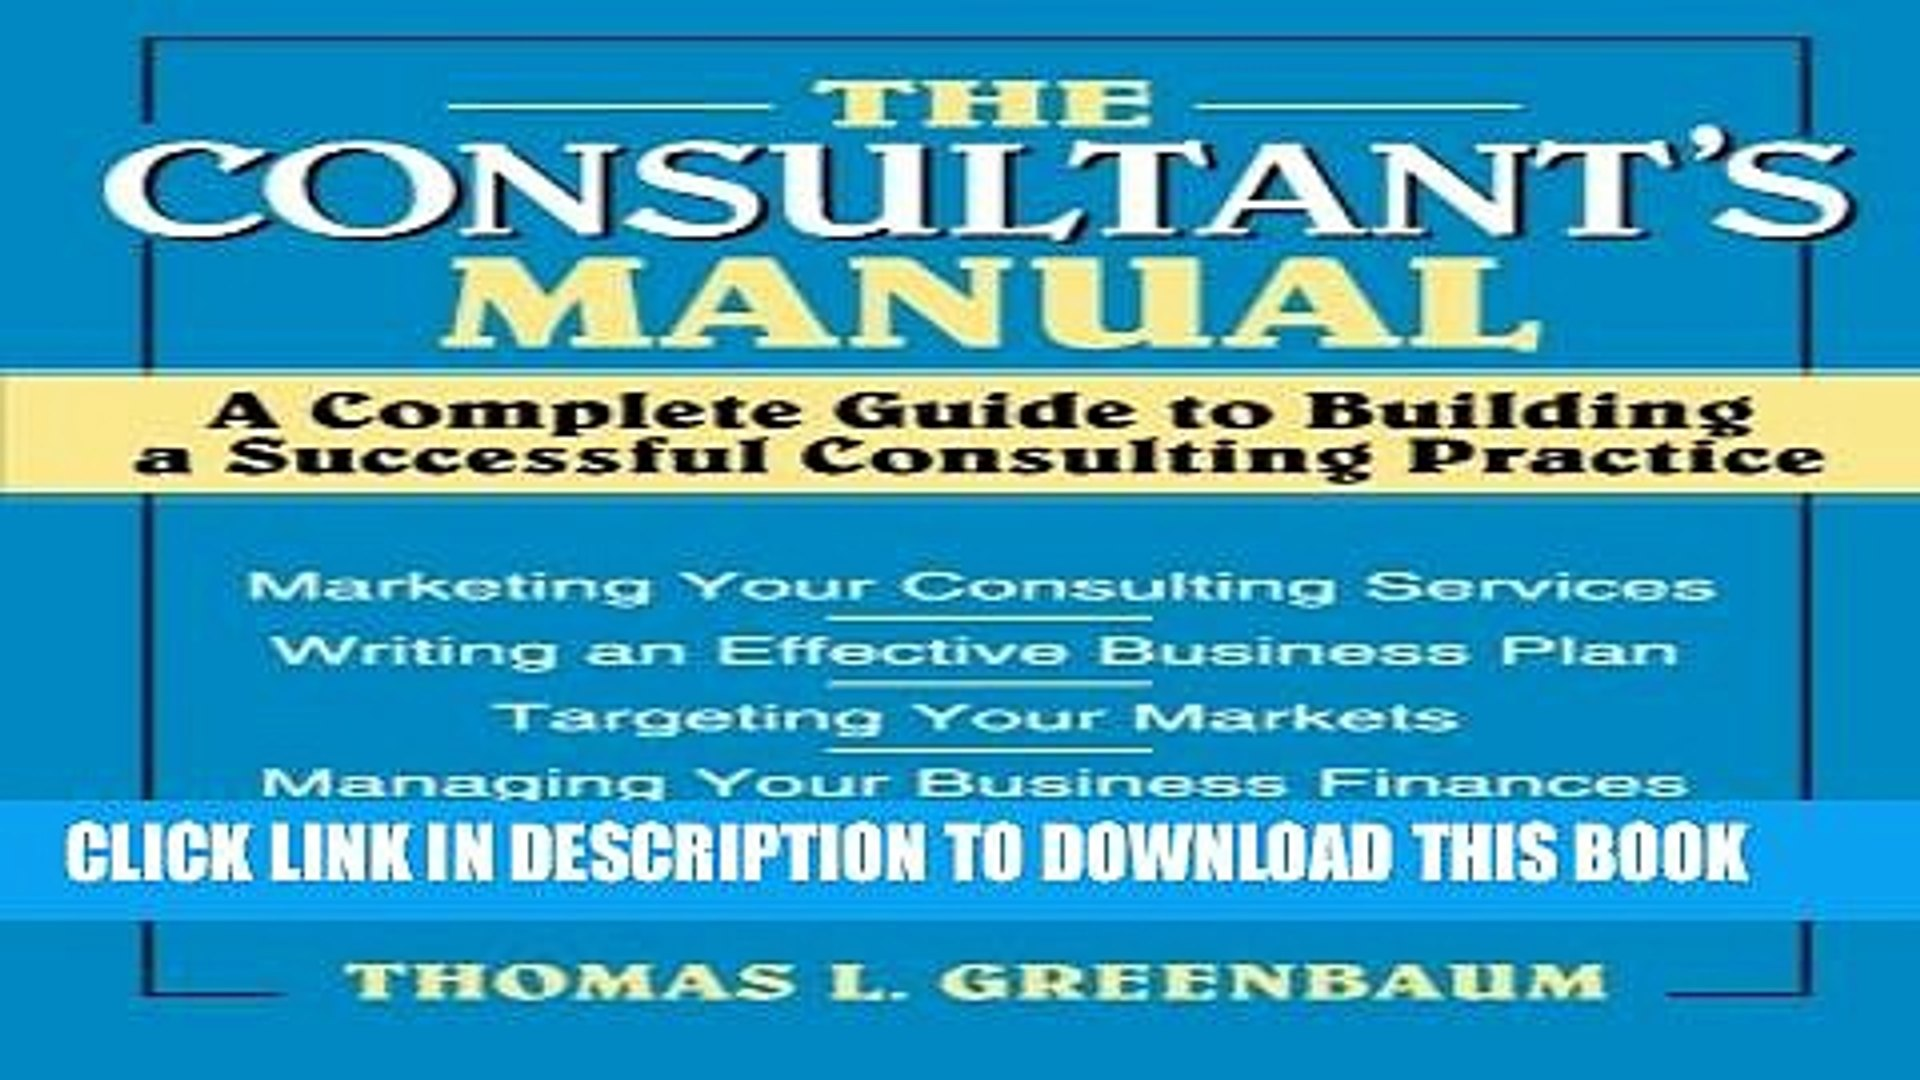 Pdf The Consultant S Manual A Complete Guide To Building A Successful Consulting Practice Full Video Dailymotion